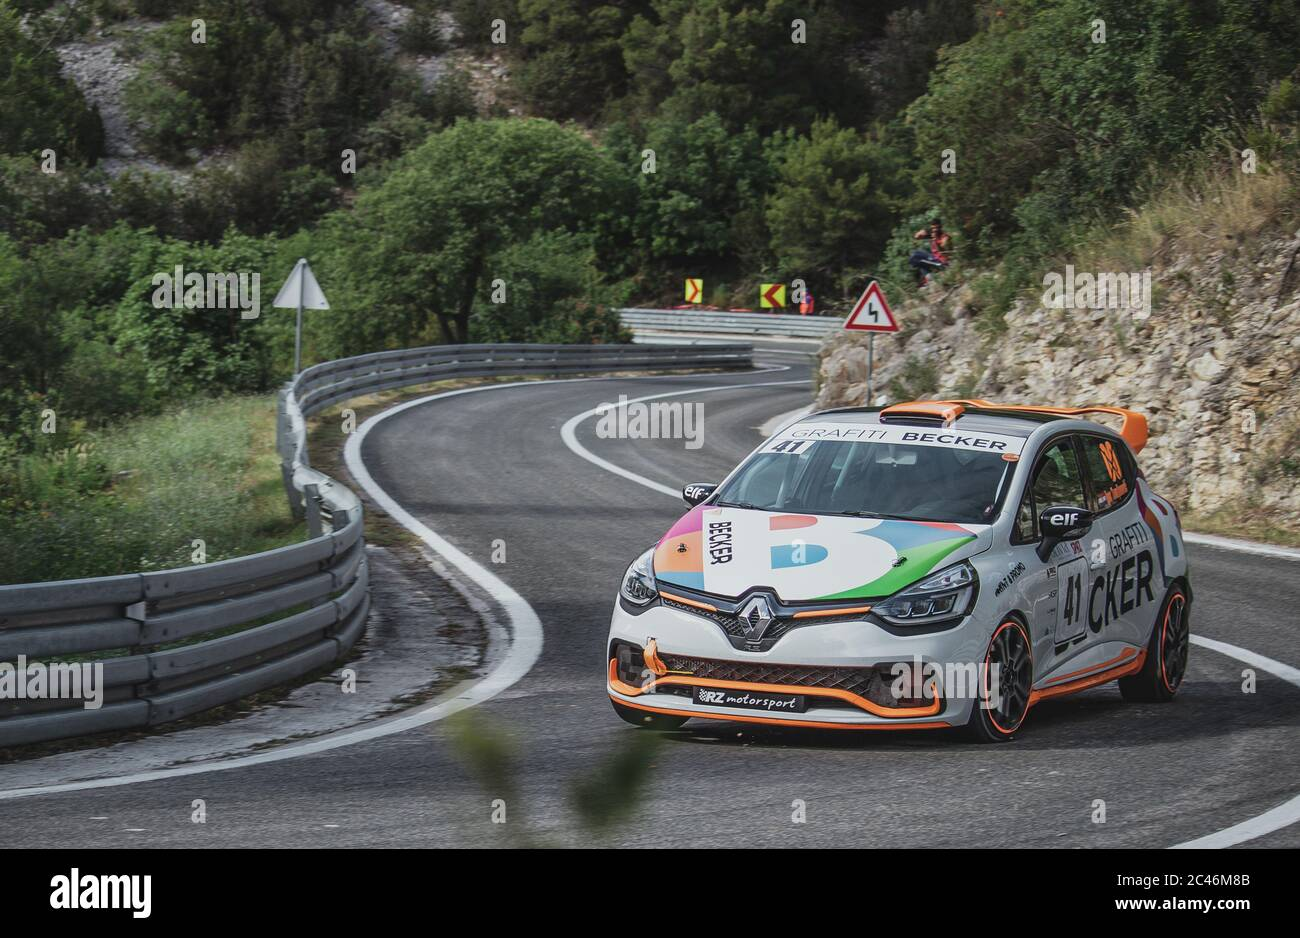 Skradin Croatia June 2020 Renault Clio Sport With Lively Colors Seen Going Through A Corner At High Speed Stock Photo Alamy